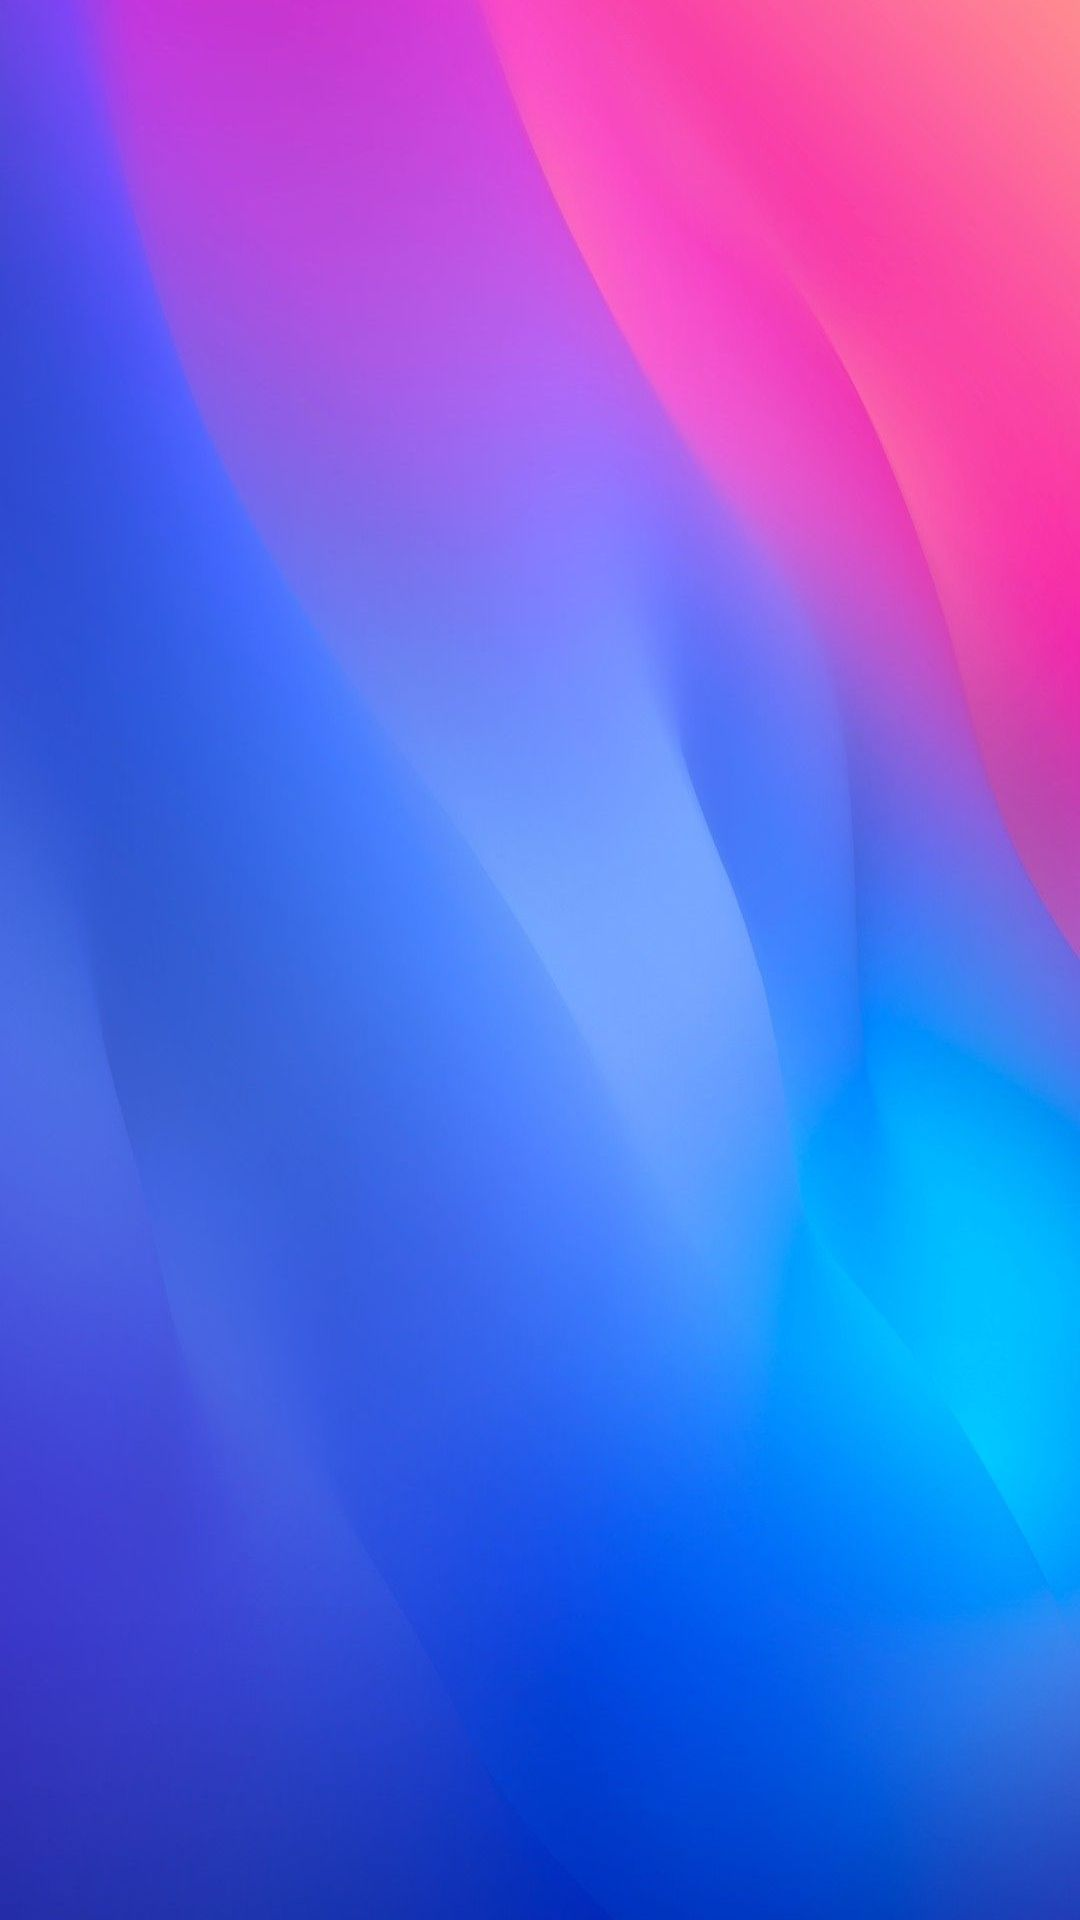 Free download iOS 12 iPhone X blue pink clean simple abstract